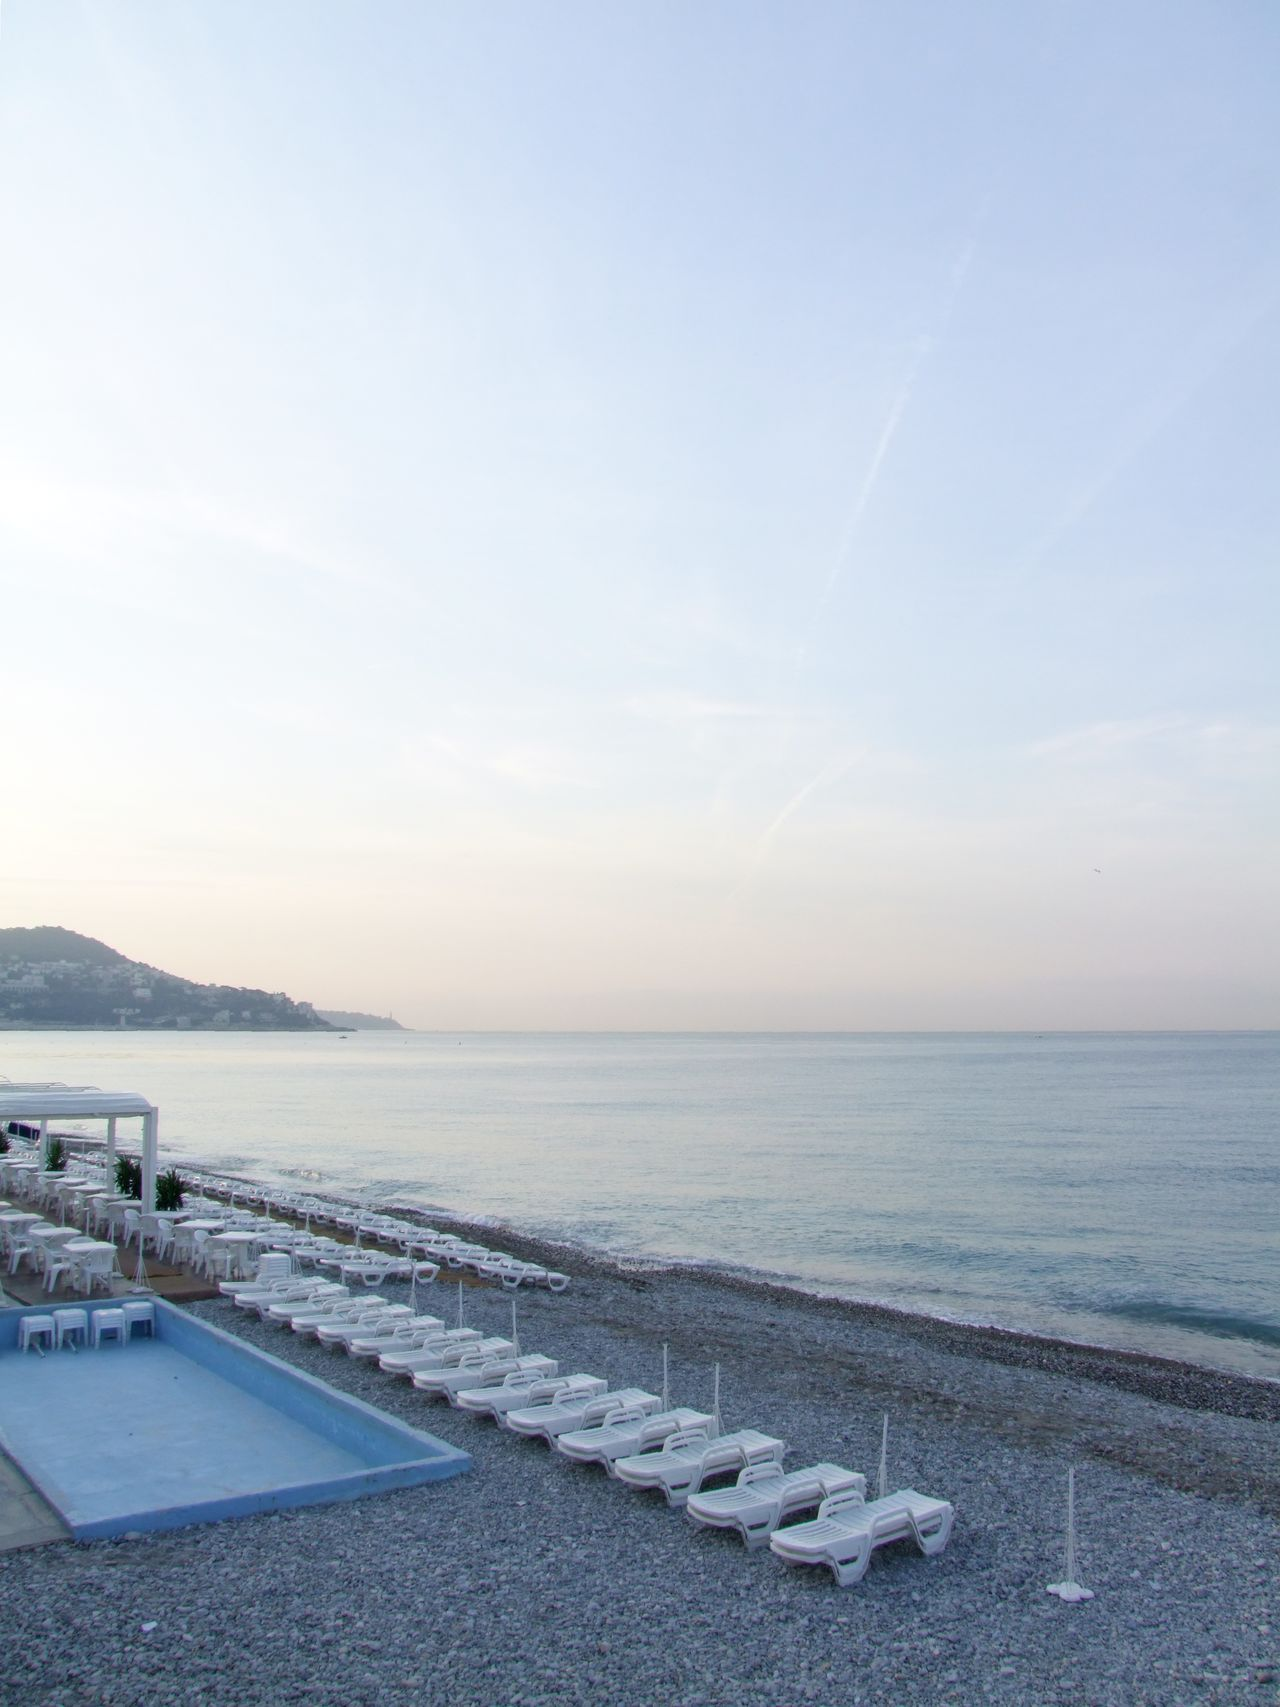 Cote d'Azur Beach Beach Beauty In Nature Coast Côte D'Azur Day Hills Horizon Over Water Lounger Mediterranean  Mediterranean Sea Morning Morning Light Nature Nizza No People Outdoors Scenics Sea Sky Spring Summer Sun Lounger Tranquil Scene Tranquility Water